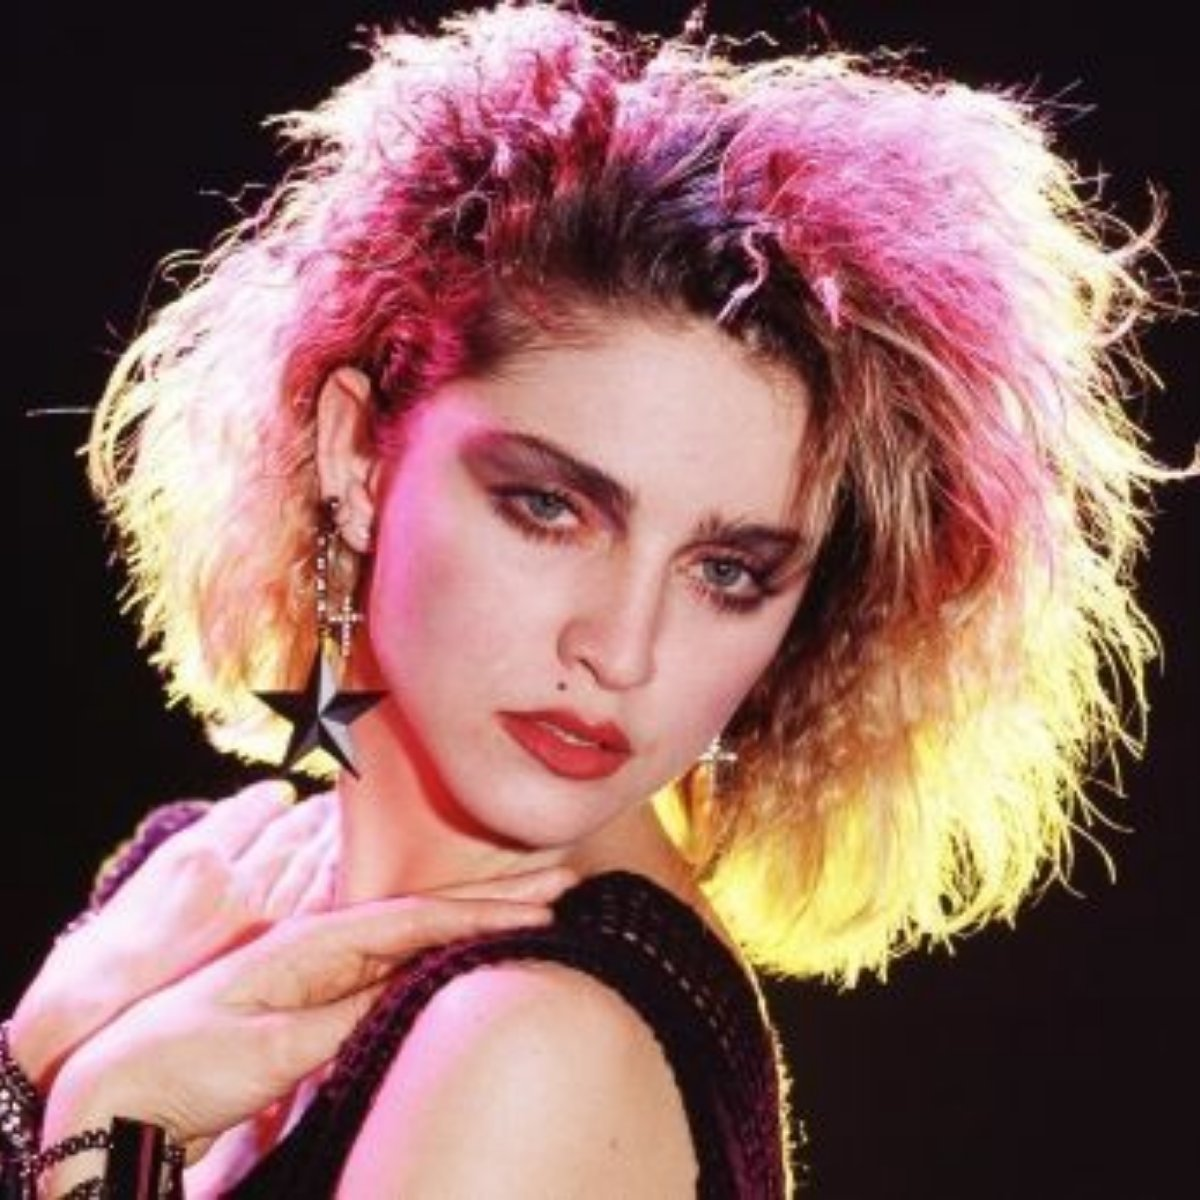 Image of Madonna with pink hair from the 1980s